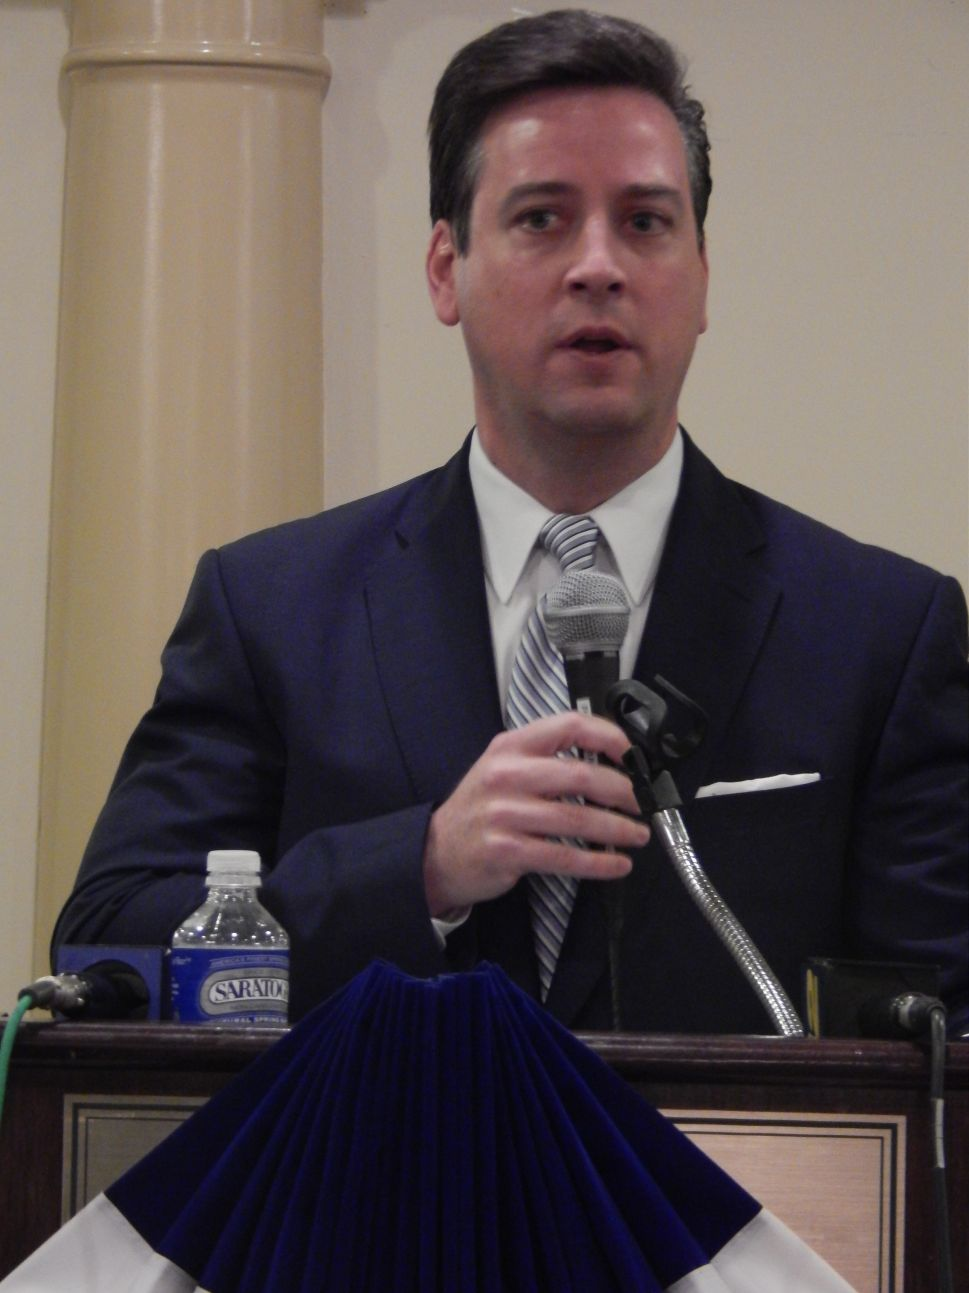 What's at stake on Tuesday night for Middlesex County Democratic Chairman Kevin McCabe?